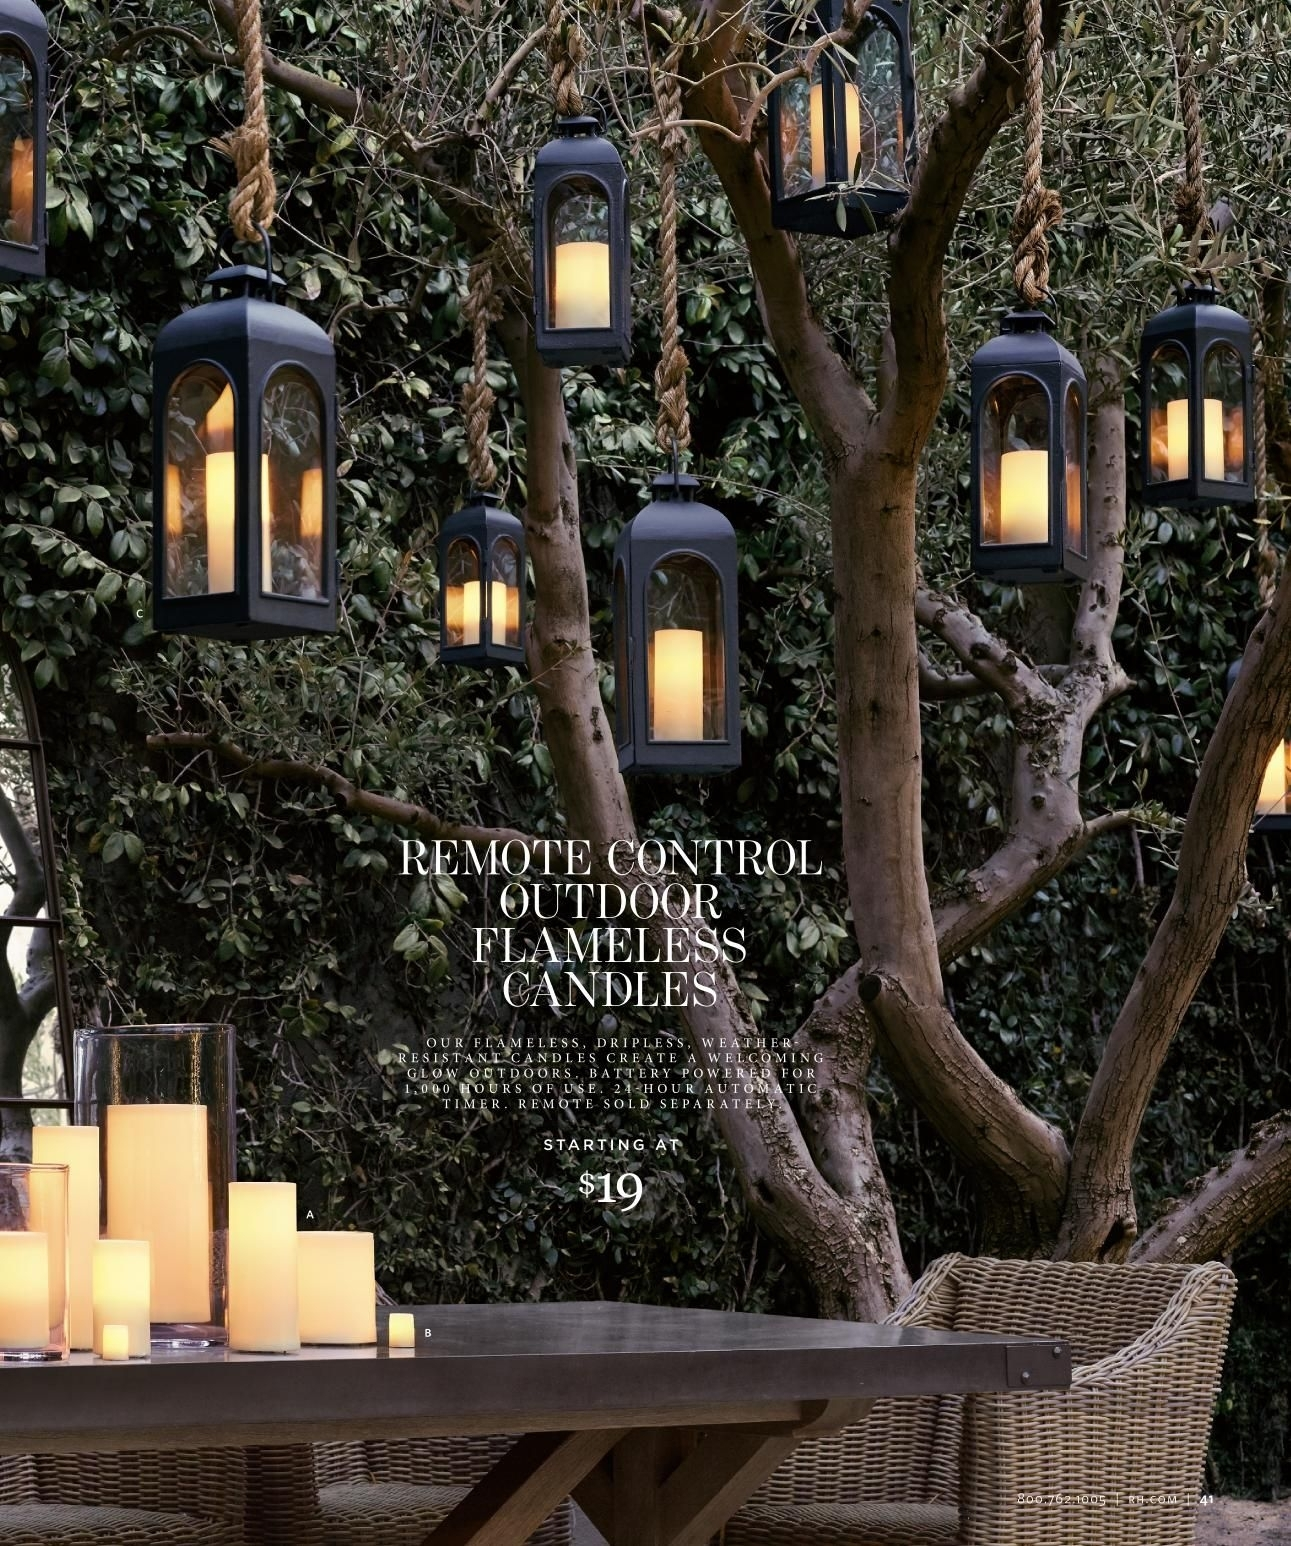 If I Could Find Something Like This That Is Weatherproof And Solar Intended For Outdoor Hanging Lanterns For Trees (View 2 of 15)